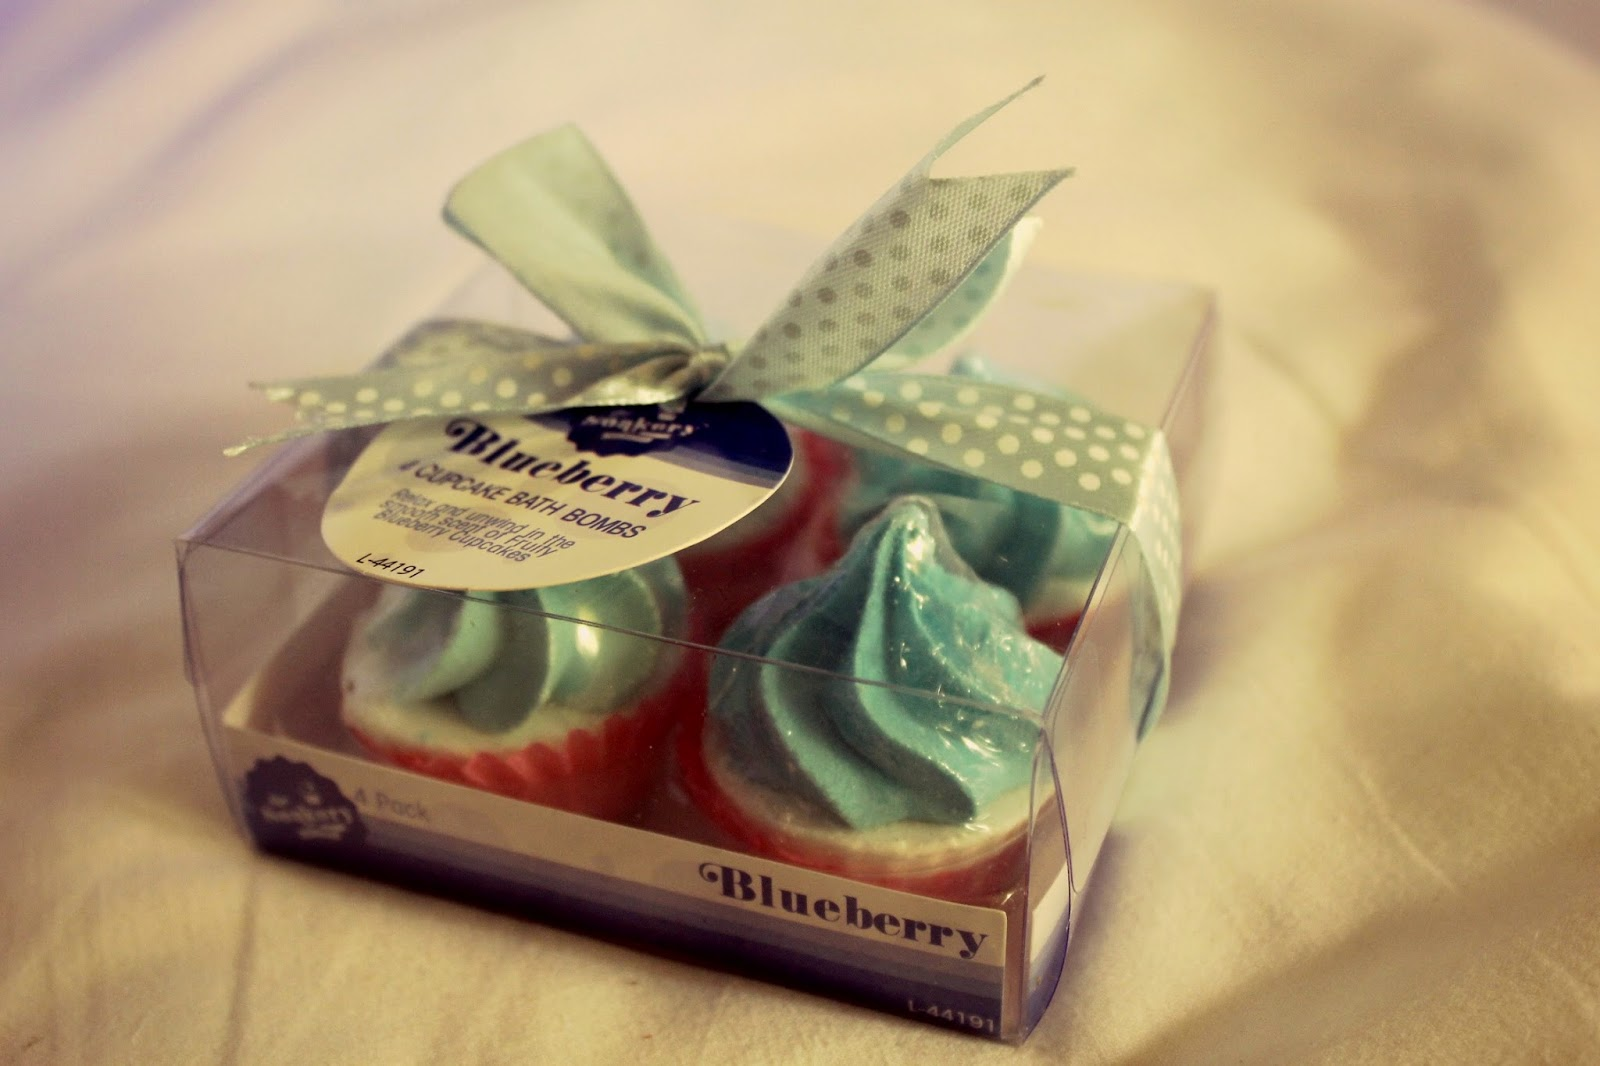 blogger swap gifts bath bomb cakes